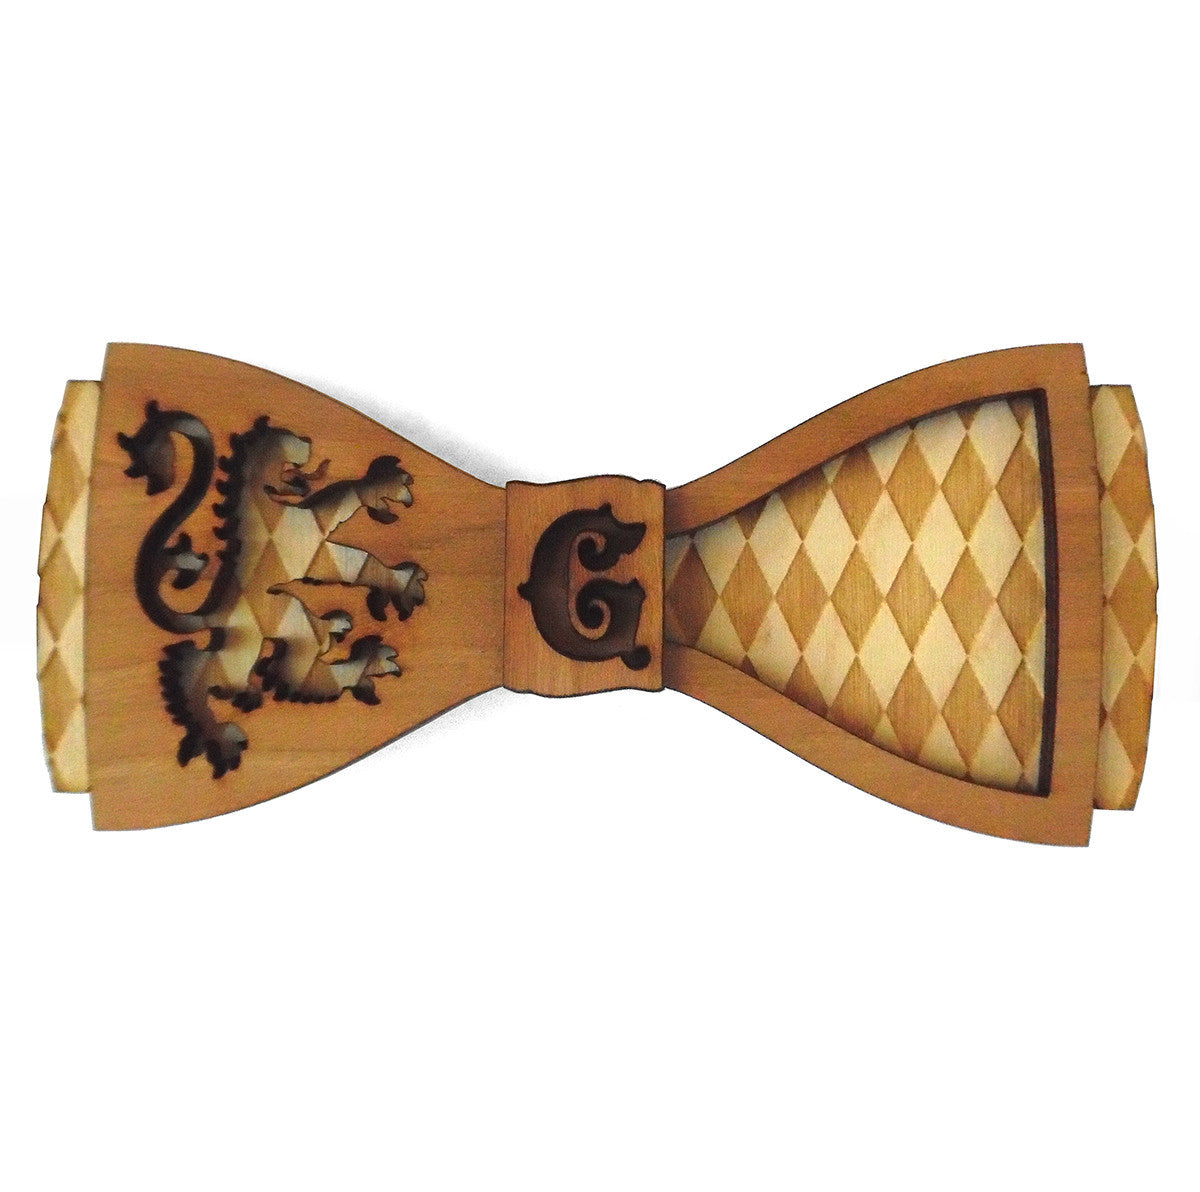 C.B Griffin D.Phil. House Heraldry Wooden Bow Tie